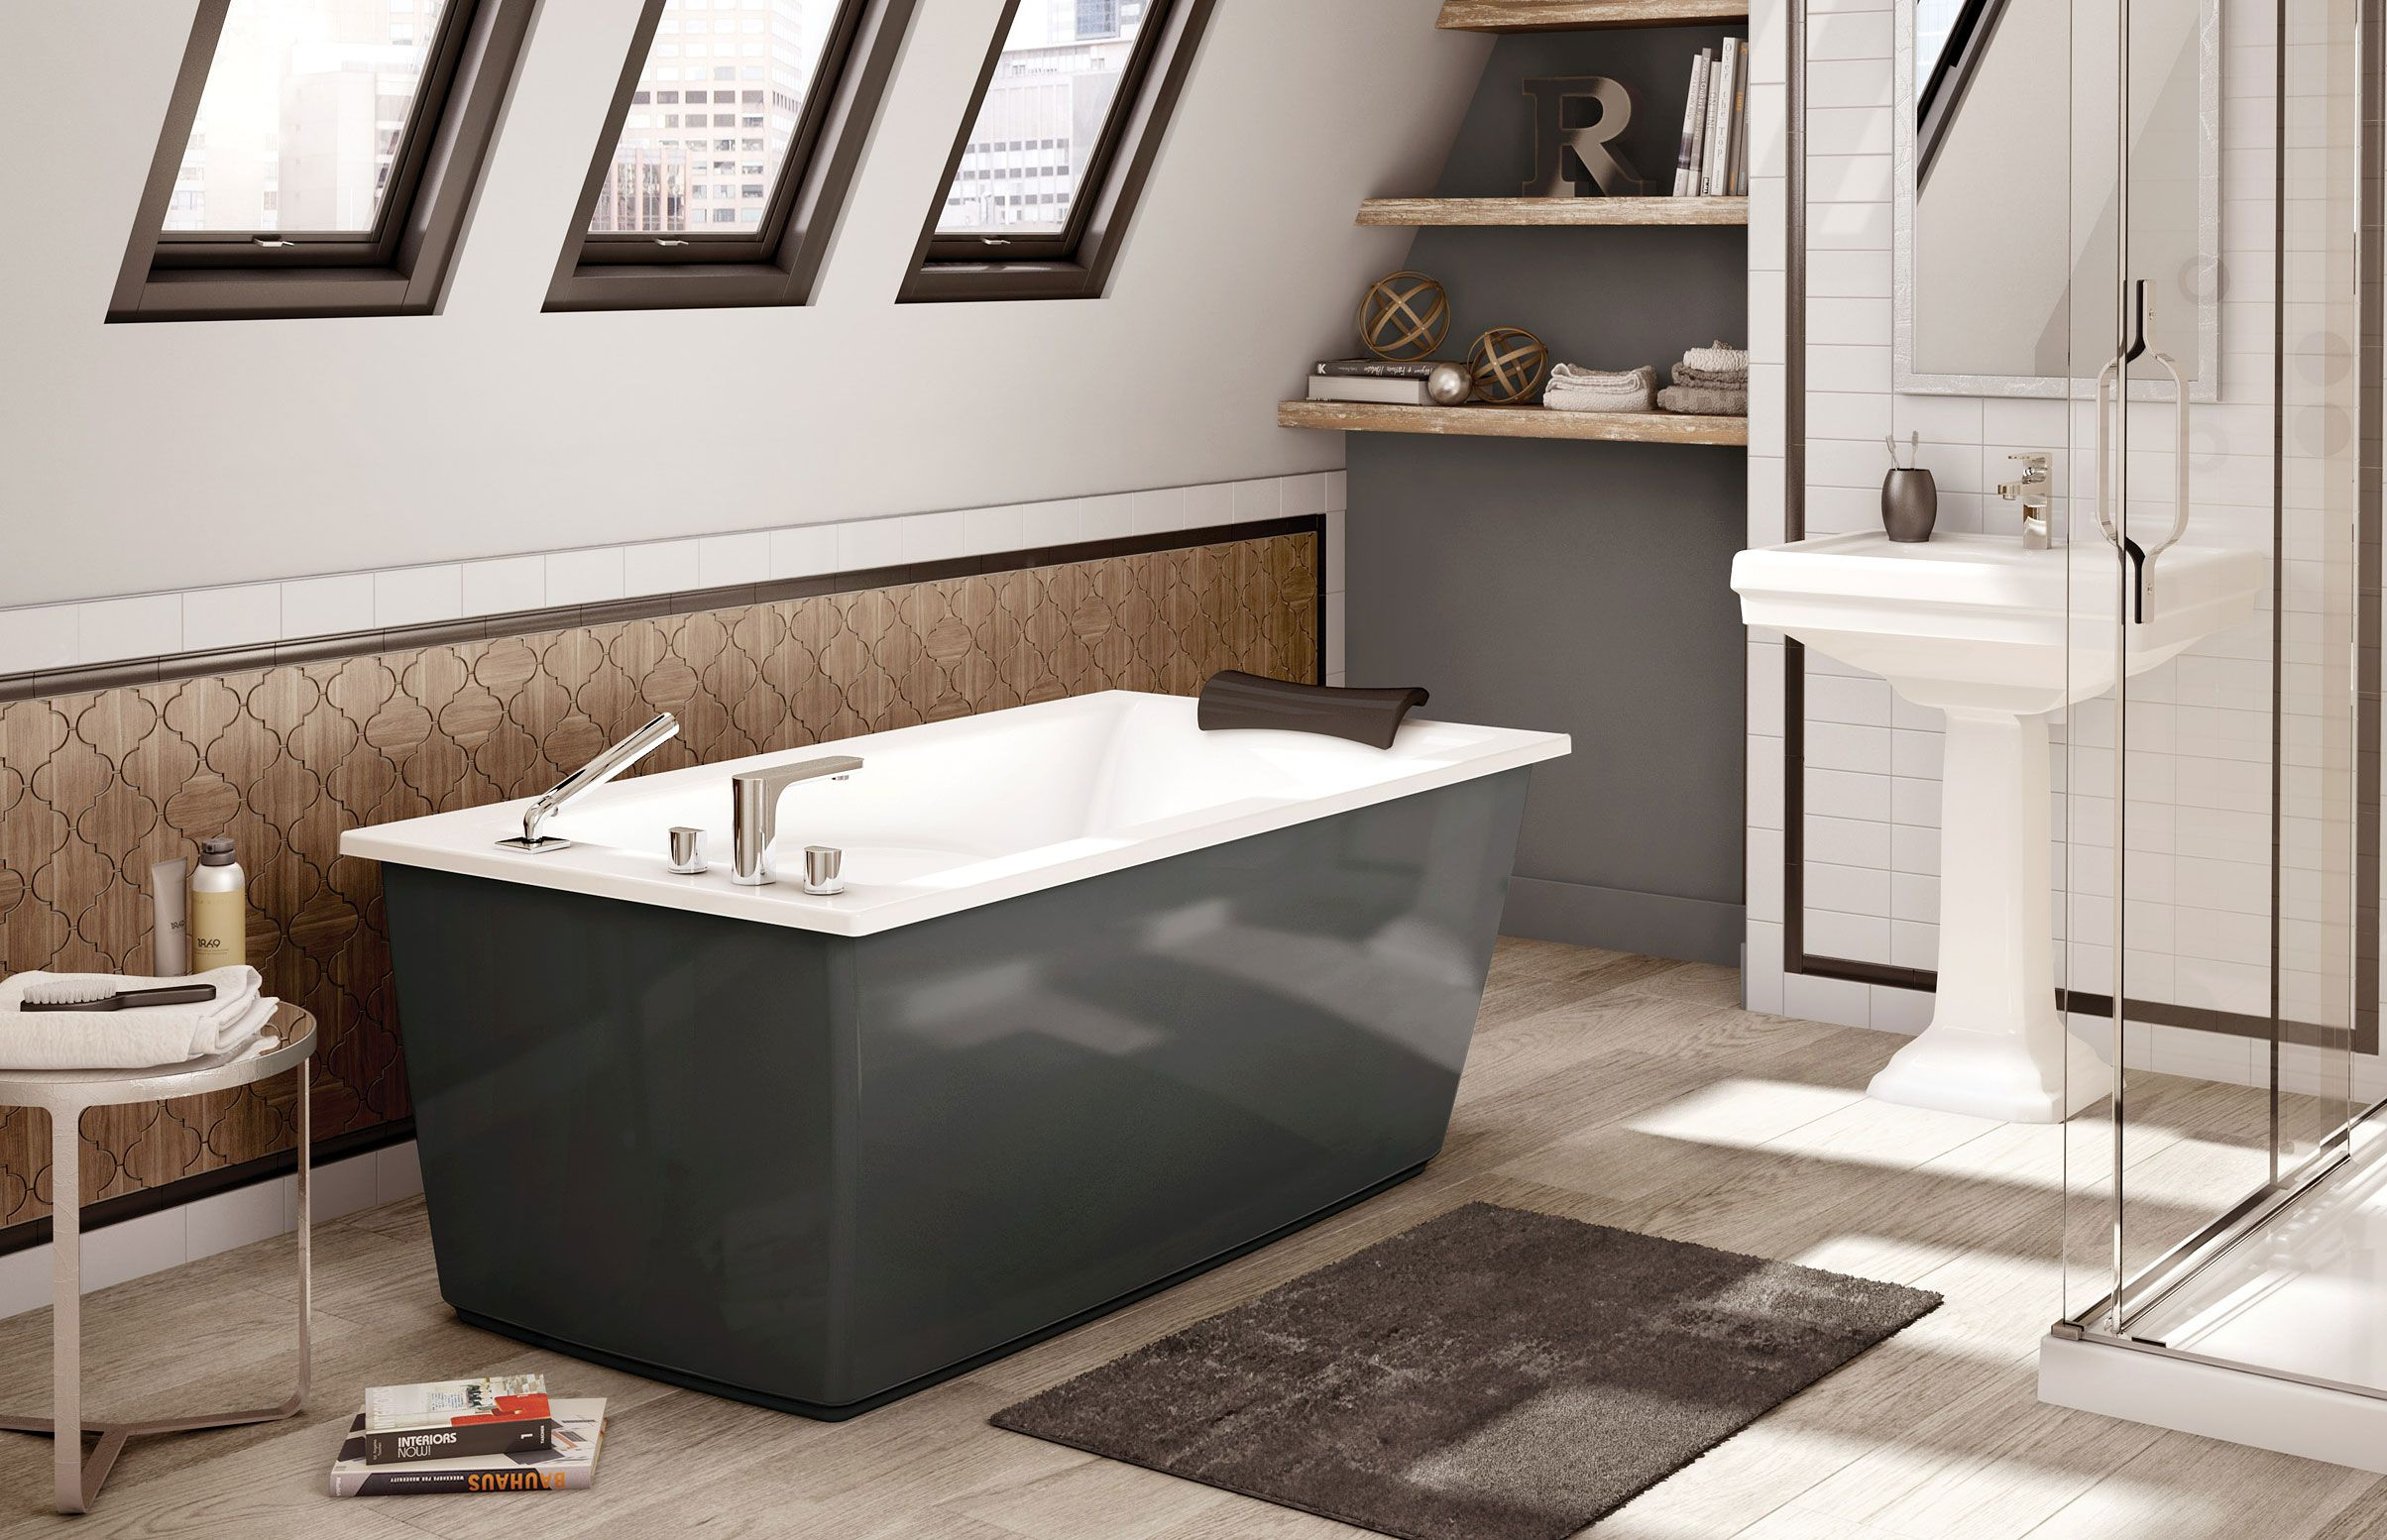 Captivating MAAX   Optik F 6032 (Thunder Gray) Freestanding Bathtub Www.maax.com